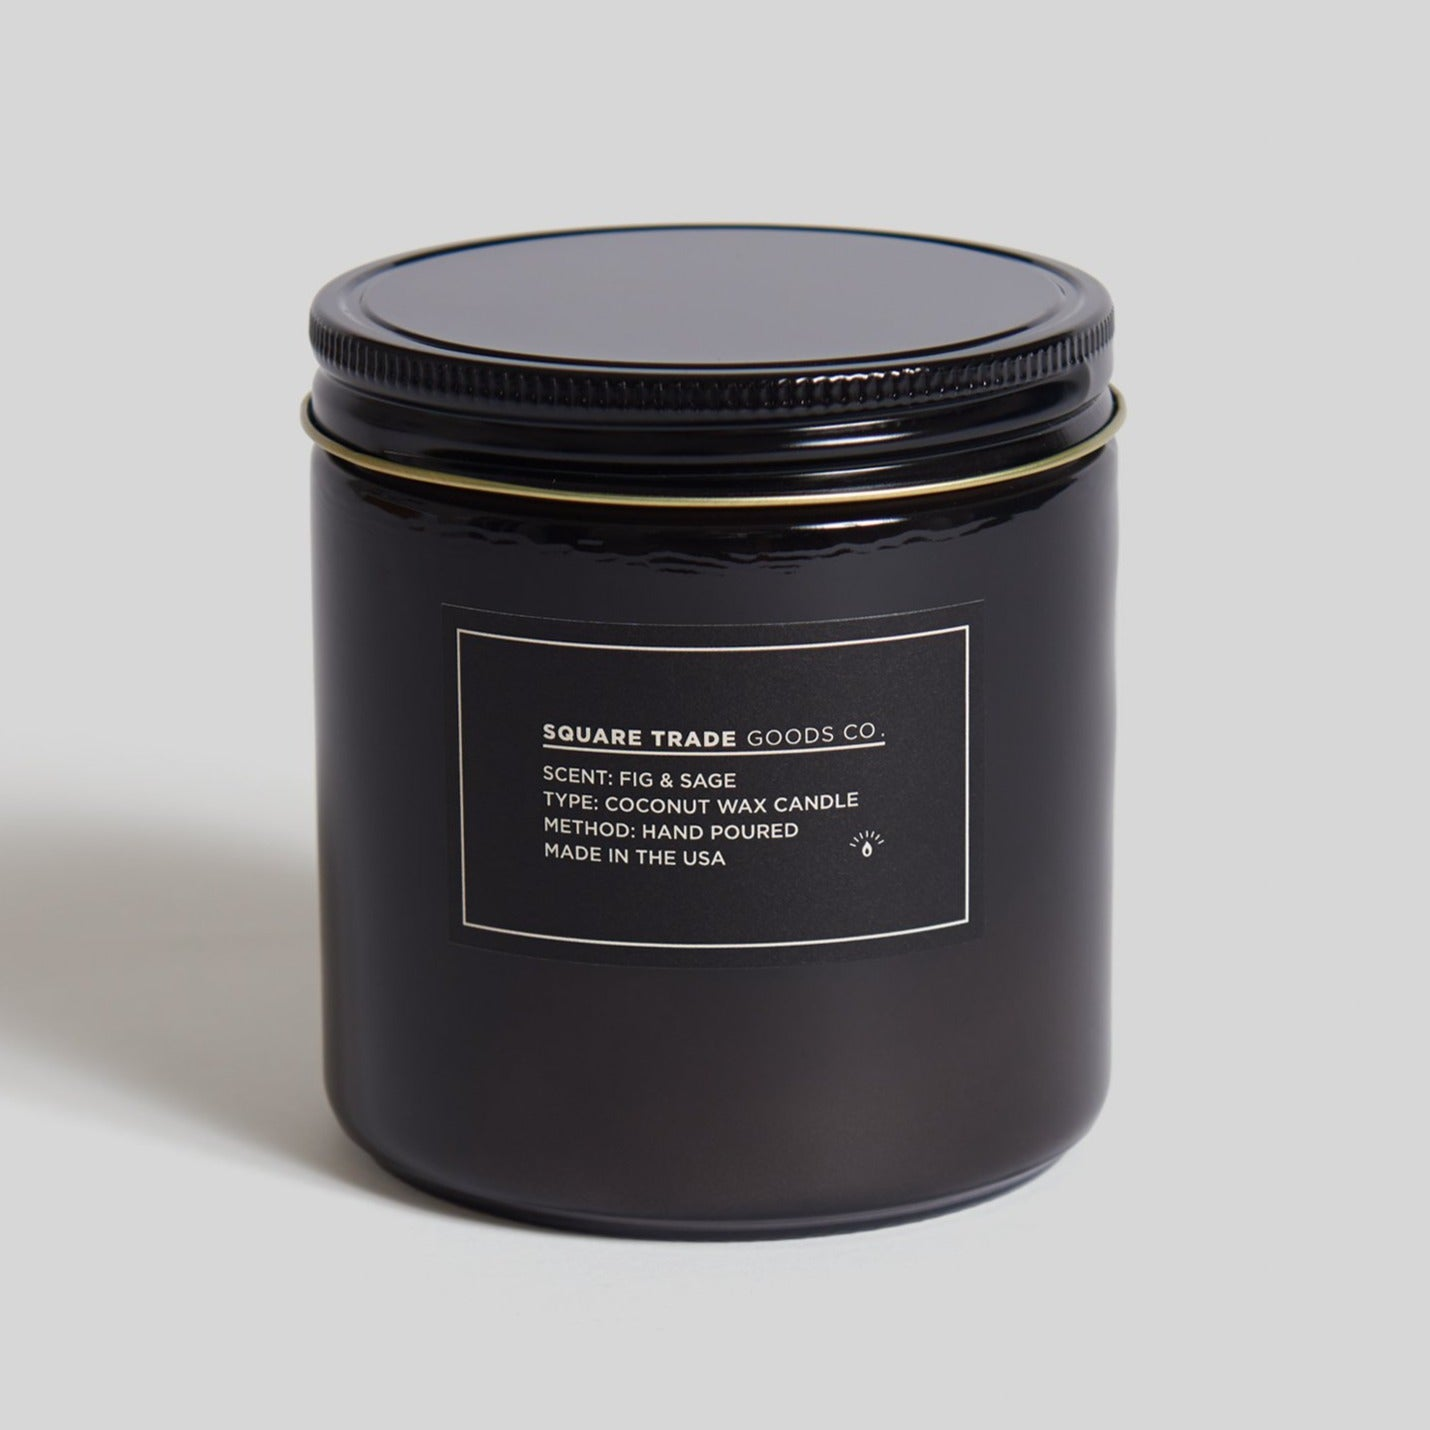 Square Trade Goods 16 oz Candle - Fig & Sage